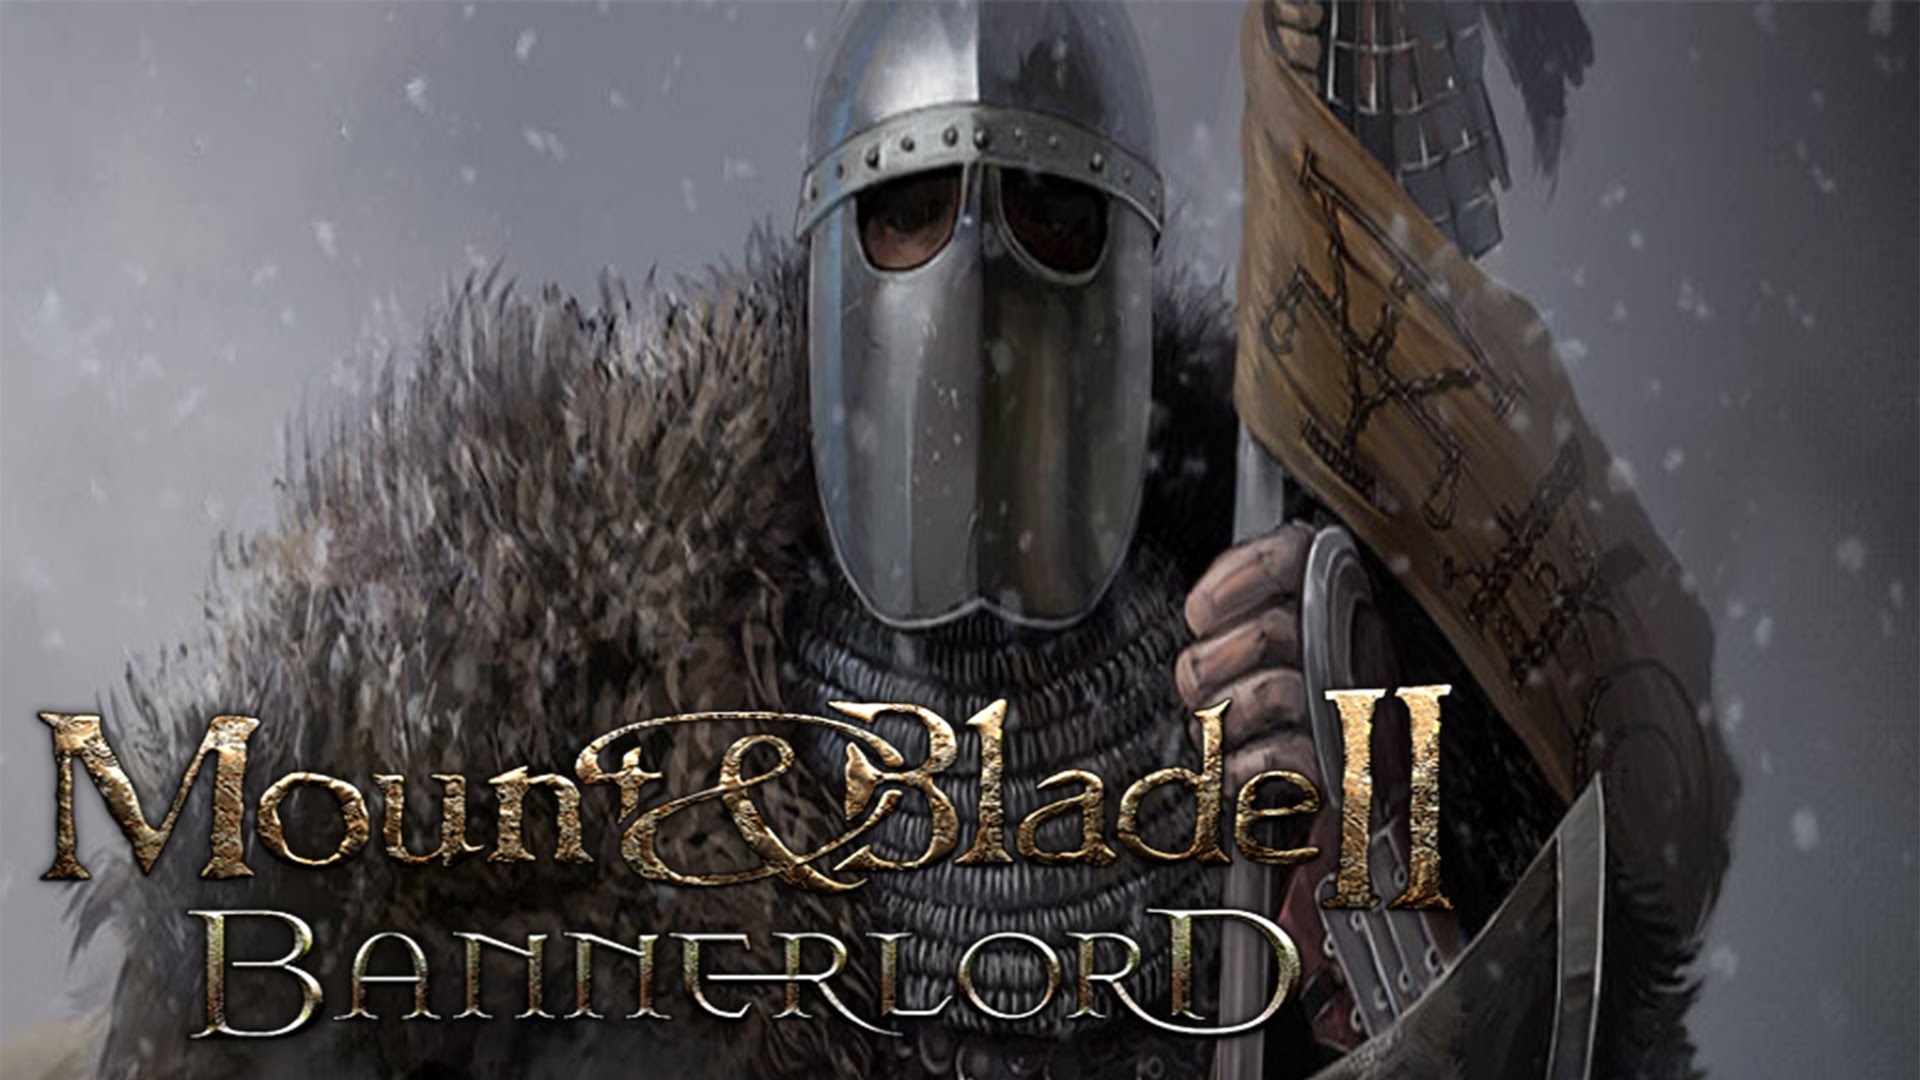 Mount Amp Blade Ii Bannerlord Dev Explains Why A Release